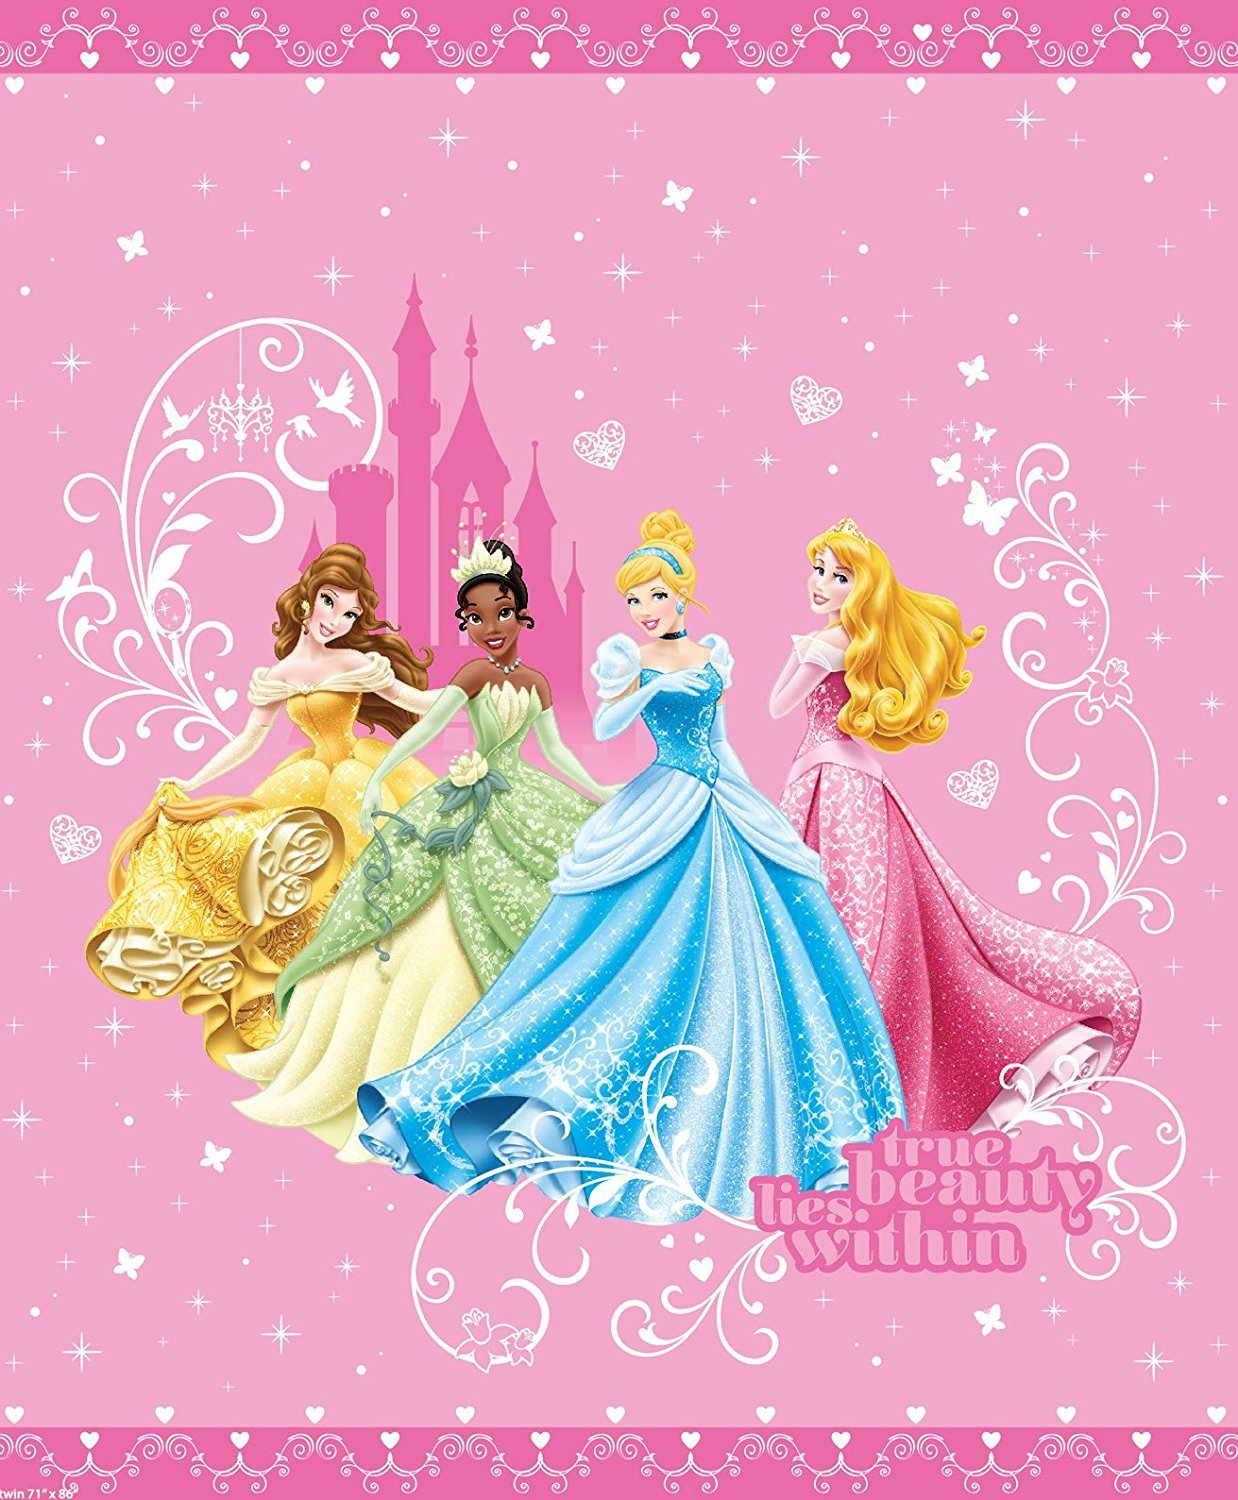 Amazon.com: Disney Princess Quilt in Full / Queen Size: Home & Kitchen : disney princess quilt - Adamdwight.com